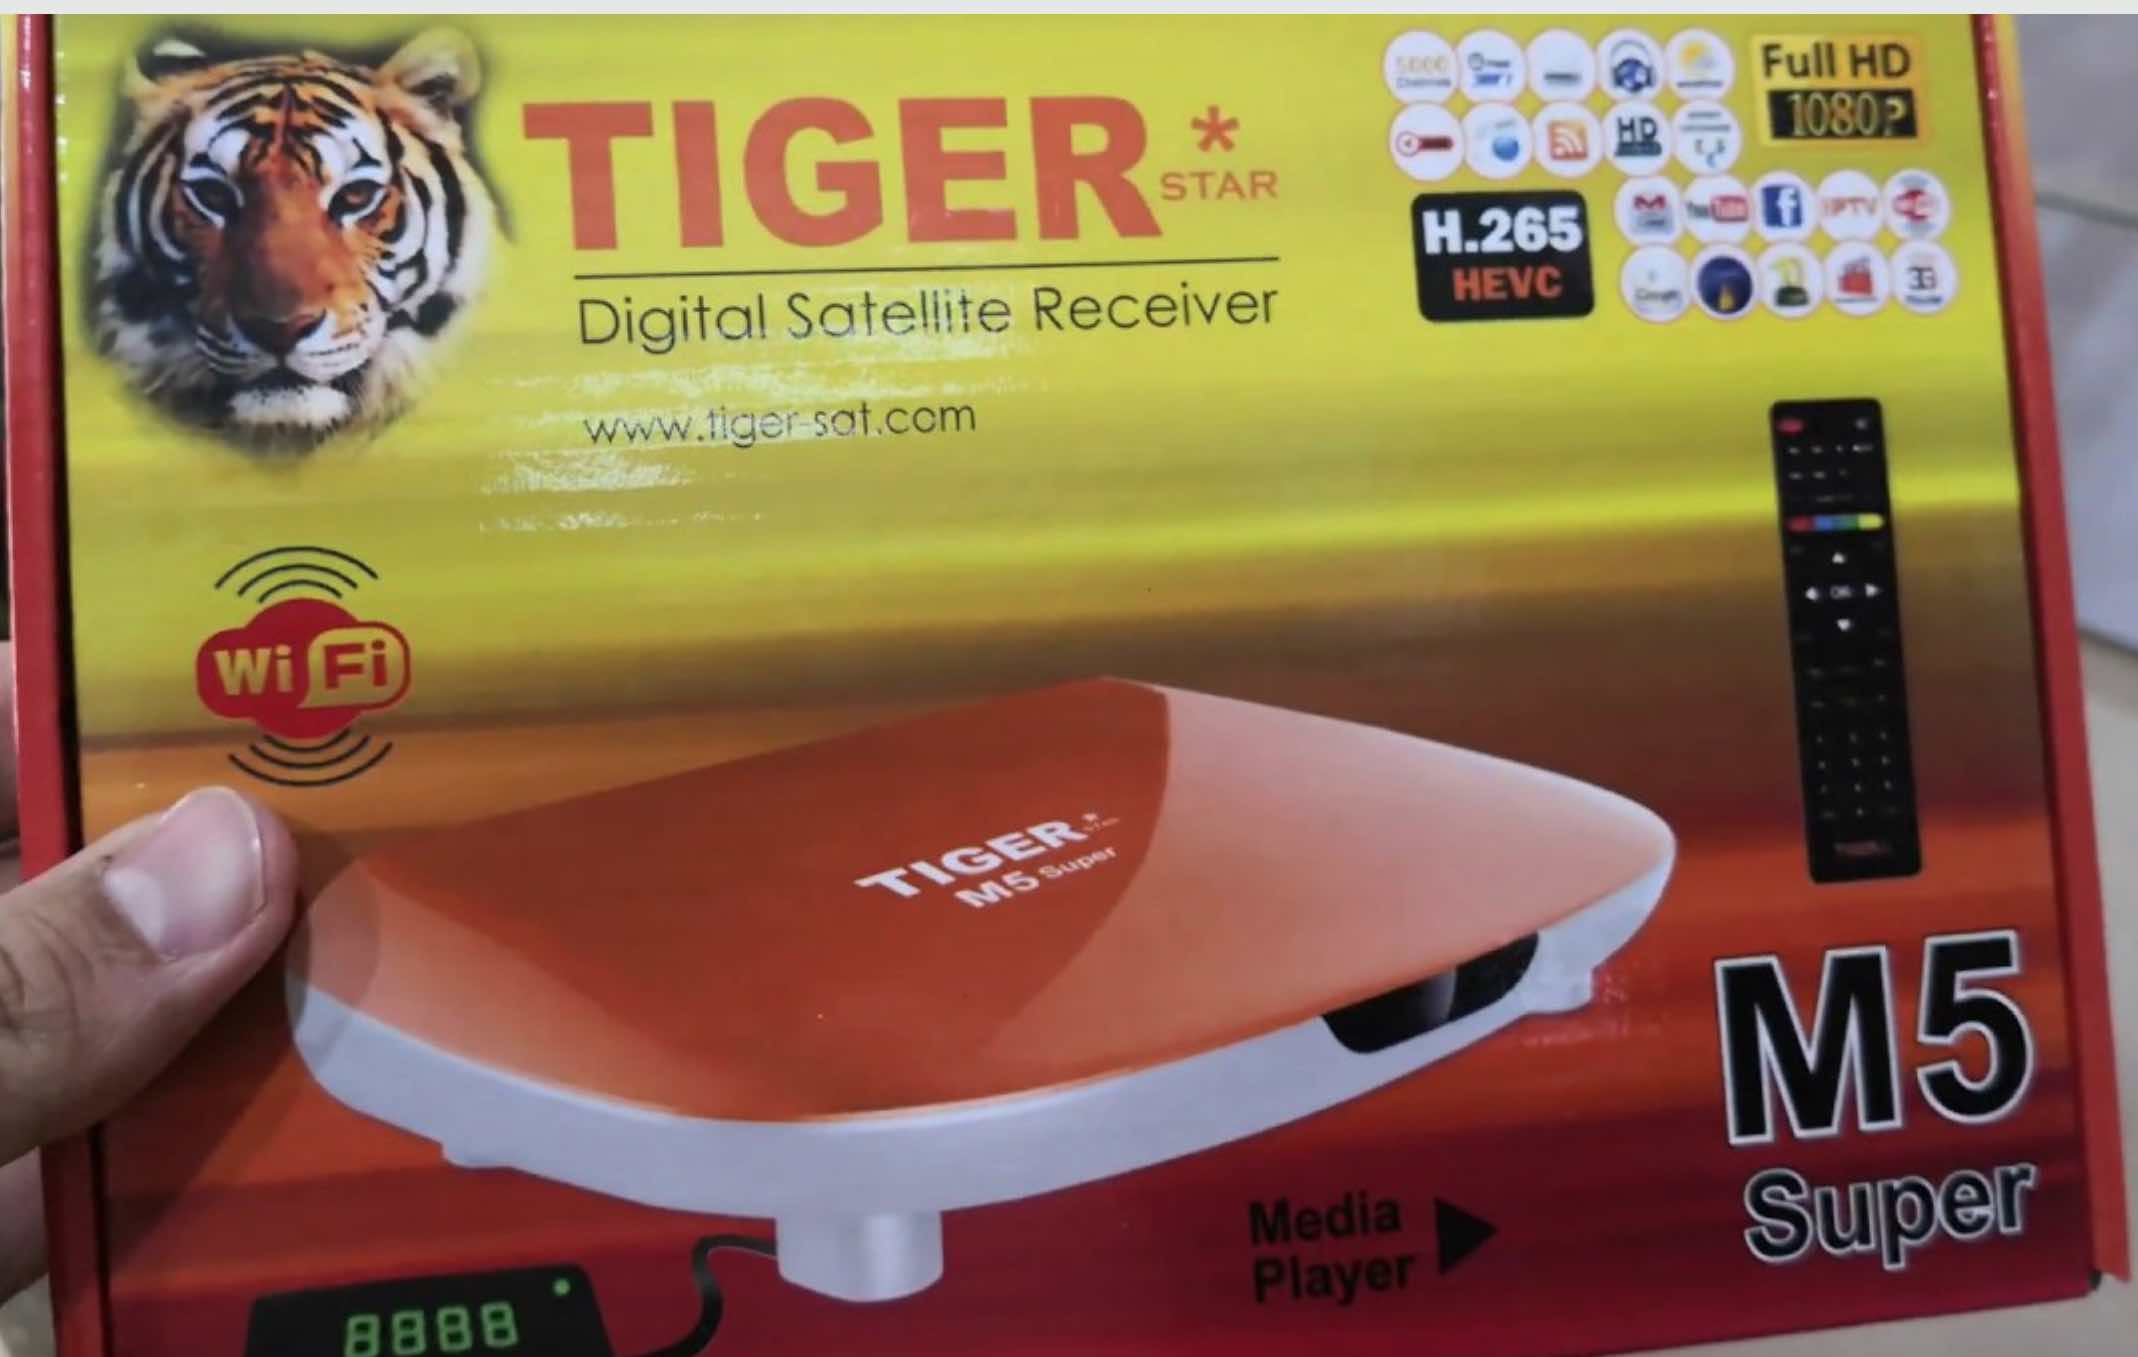 Tiger M5 Super Satellite Receiver Combo – Comes with IPTV, IKS, SKS